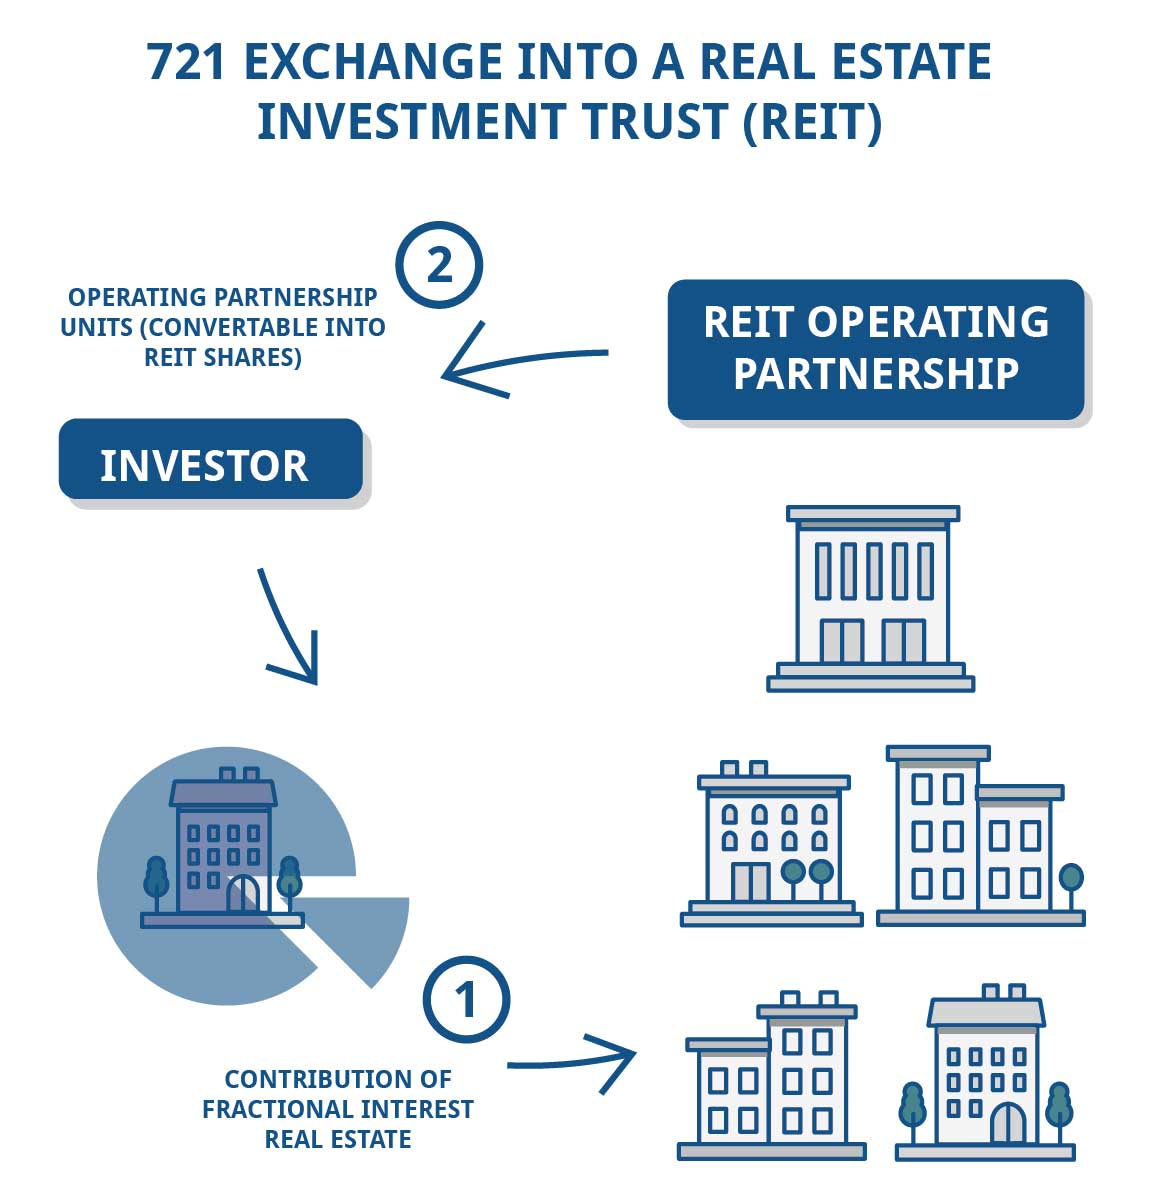 721 Exchange into a REIT